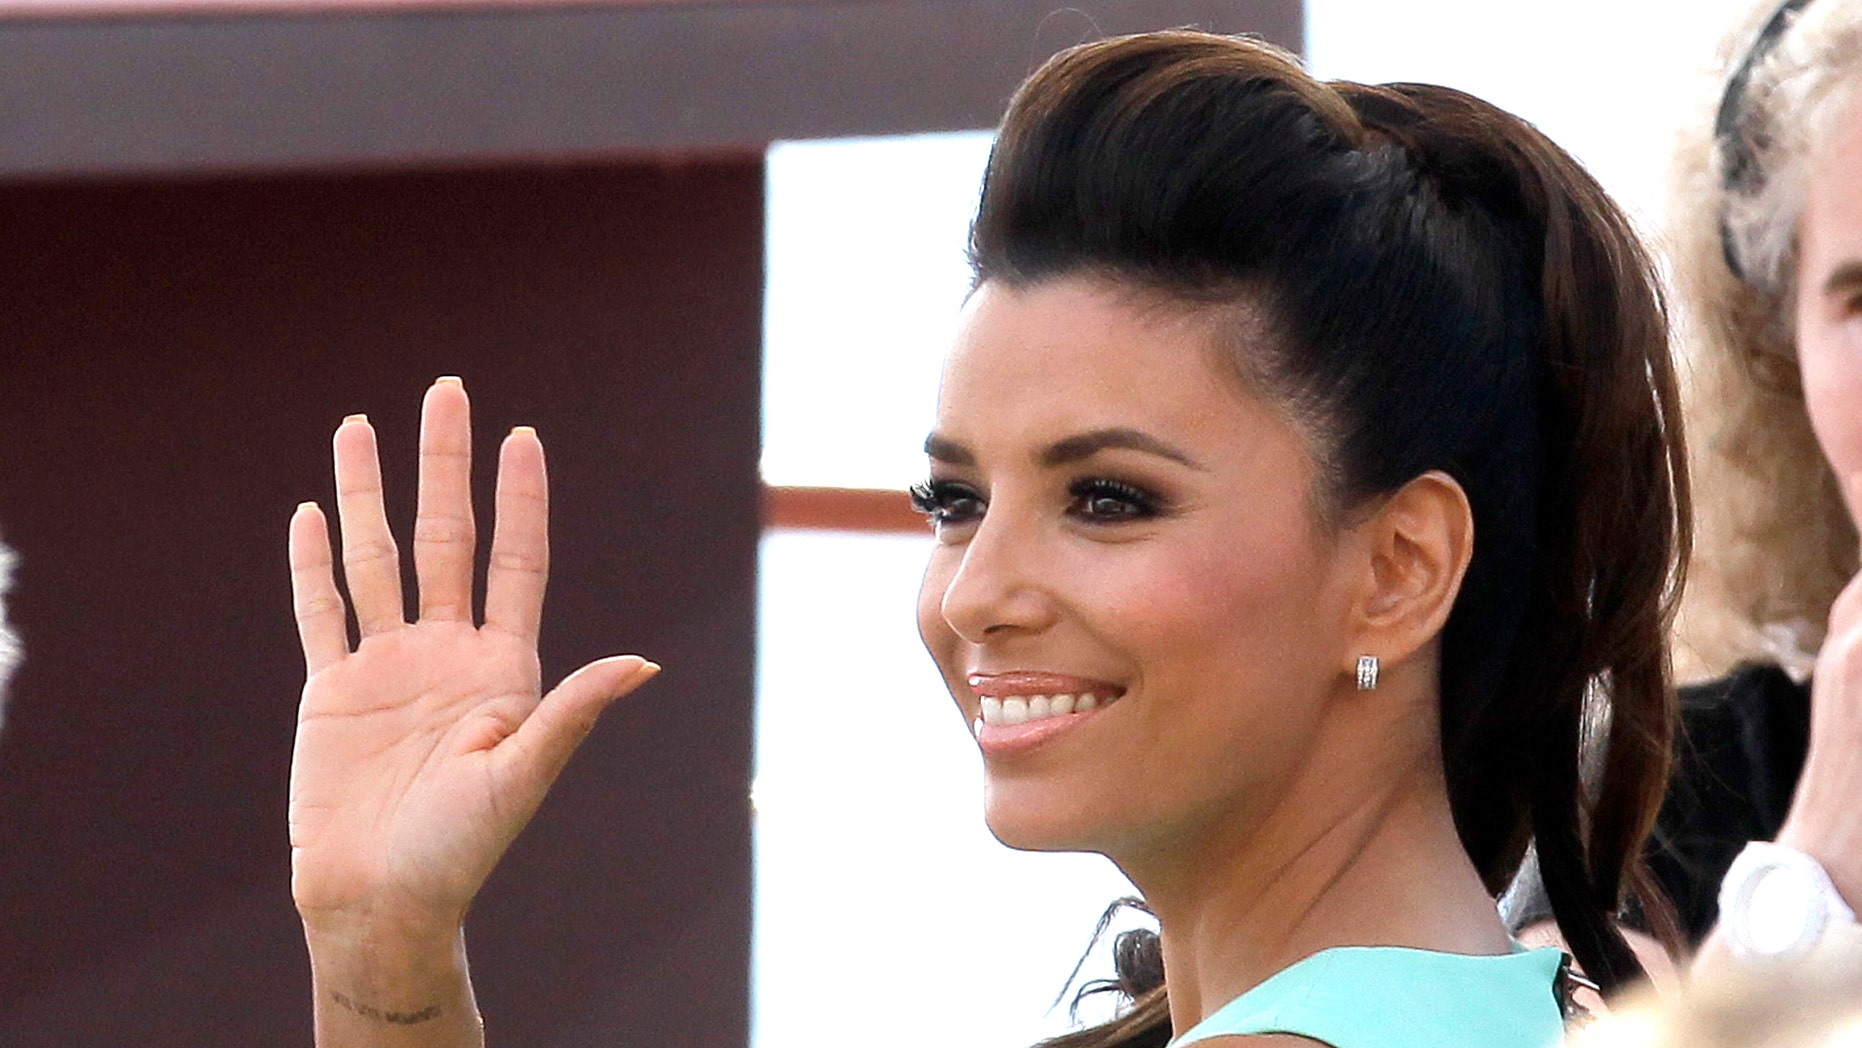 June 13, 2012:  In this file photo, actress Eva Longoria waves to the fans during the 2012 Monte Carlo Television Festival in Monaco.